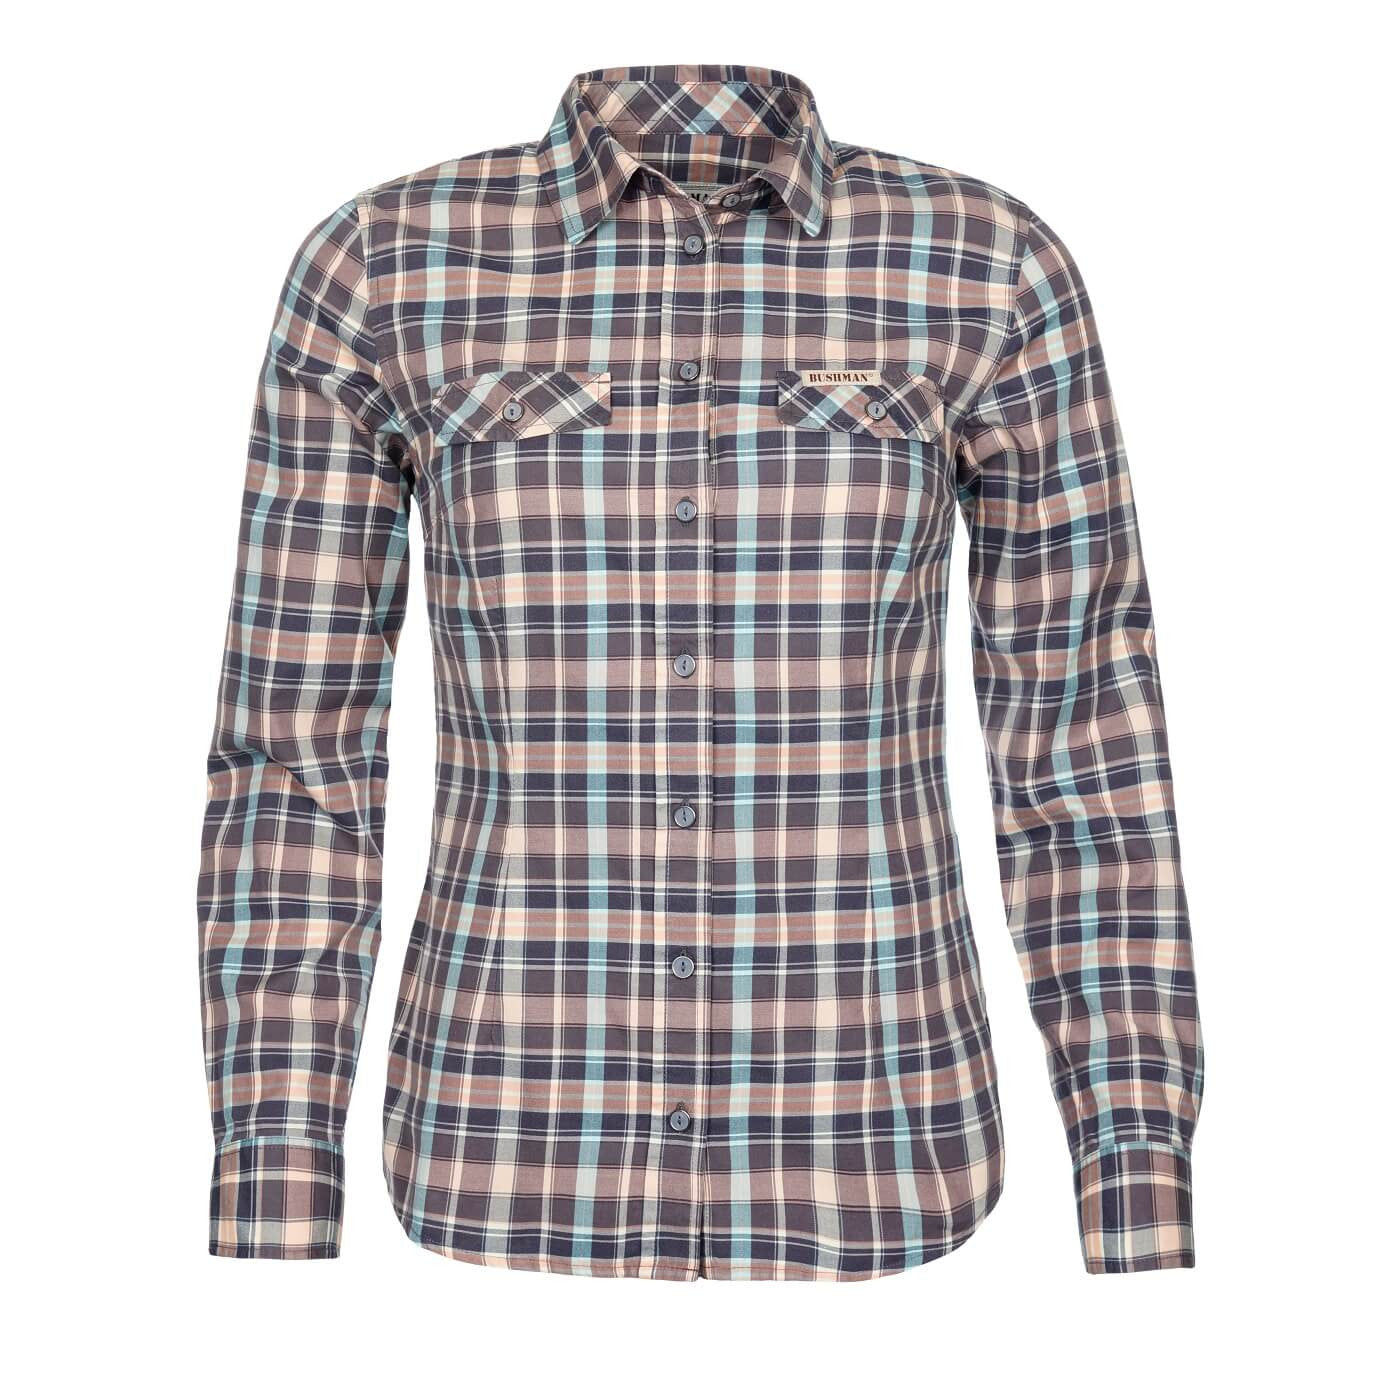 BUSHMANSHOP BAHIA WOMEN'S PLAID BLUE RED COTTON LONG SLEEVE SHIRT